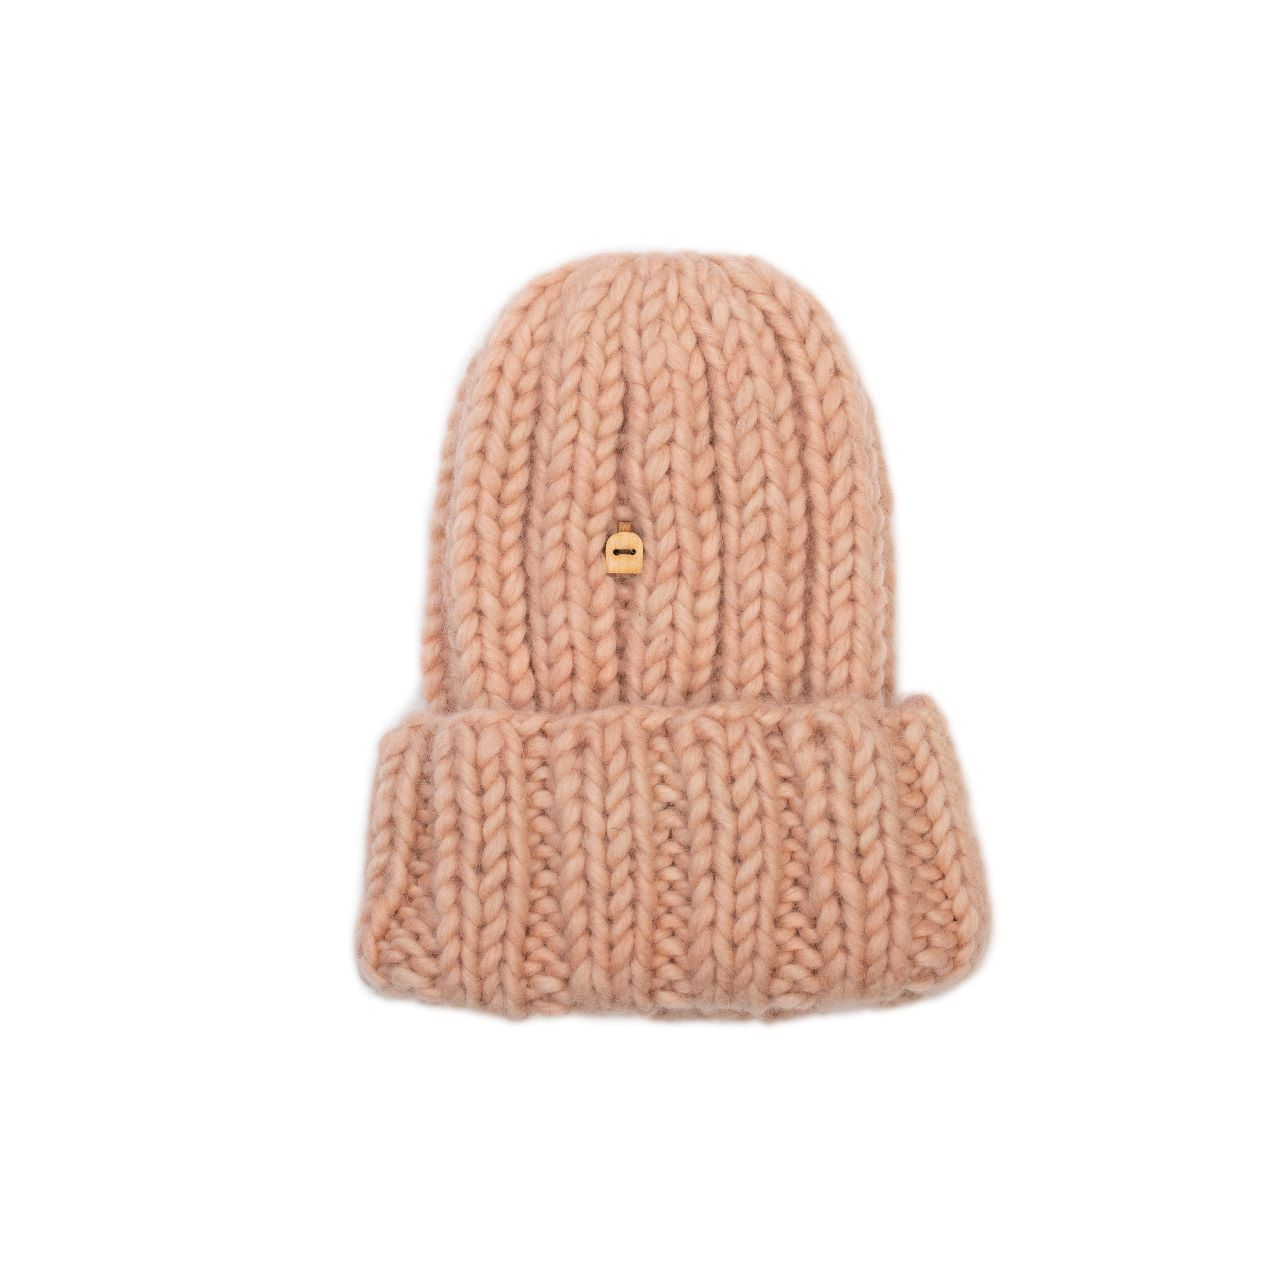 Myssyfarmi - Muffi Beanie - Finnish Organic Wool - Weekendbee - sustainable sportswear